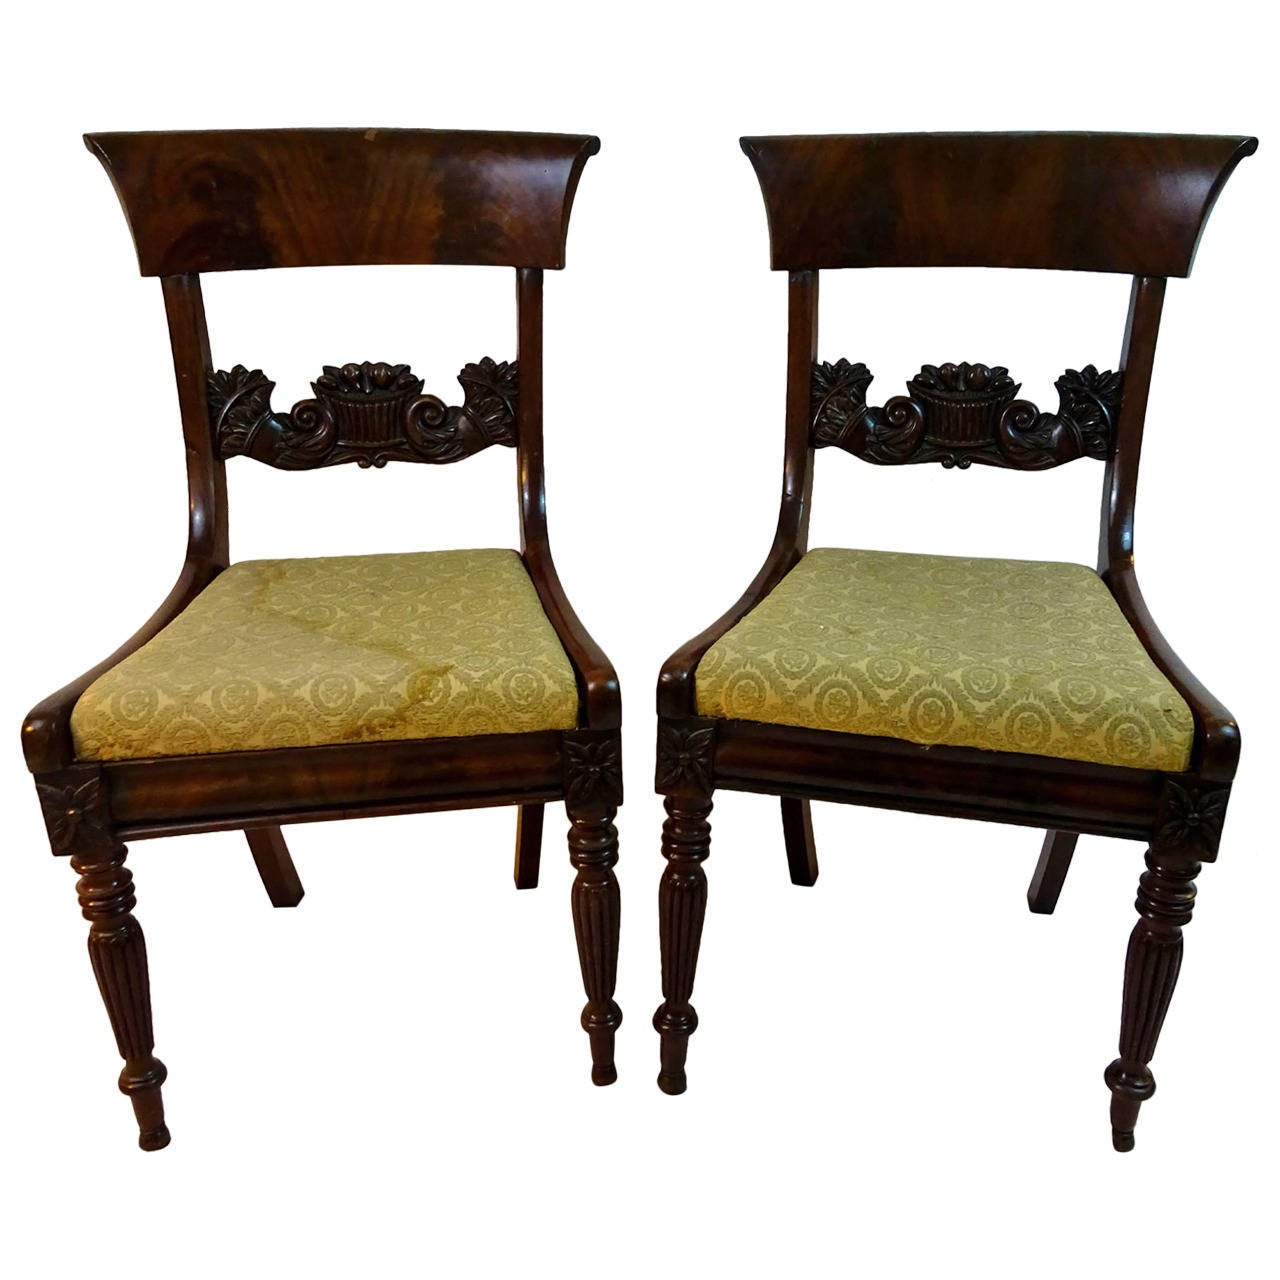 Pair of 19th Century American Federal Style Chairs after